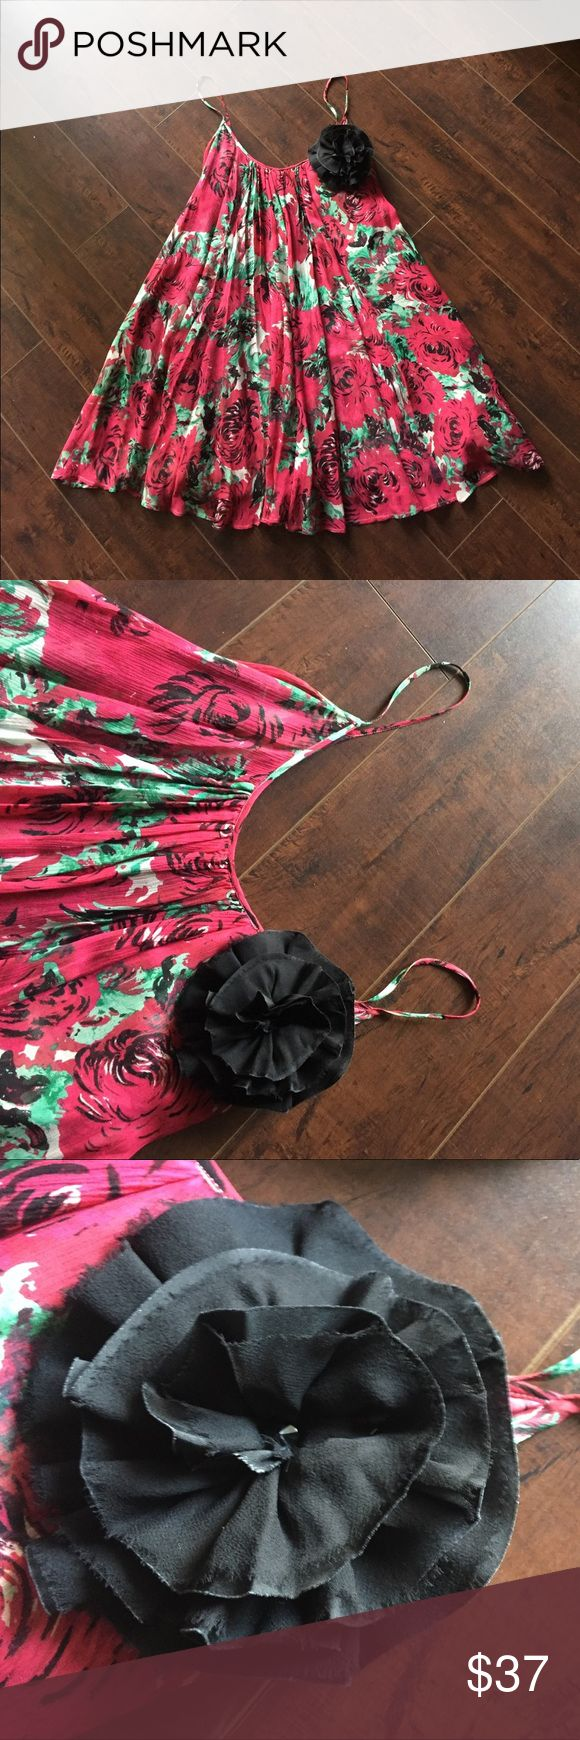 Plenty Frock Tracy Reese silk pleated floral dress Plenty Frock Tracy Reese 100% silk pleated floral dress with accented black flower. Super cute dress. Perfect for any party of night out. Dress is knee length. Size is petite. Overall color is pinkish red with red, green and black roses on dress Plenty by Tracy Reese Dresses